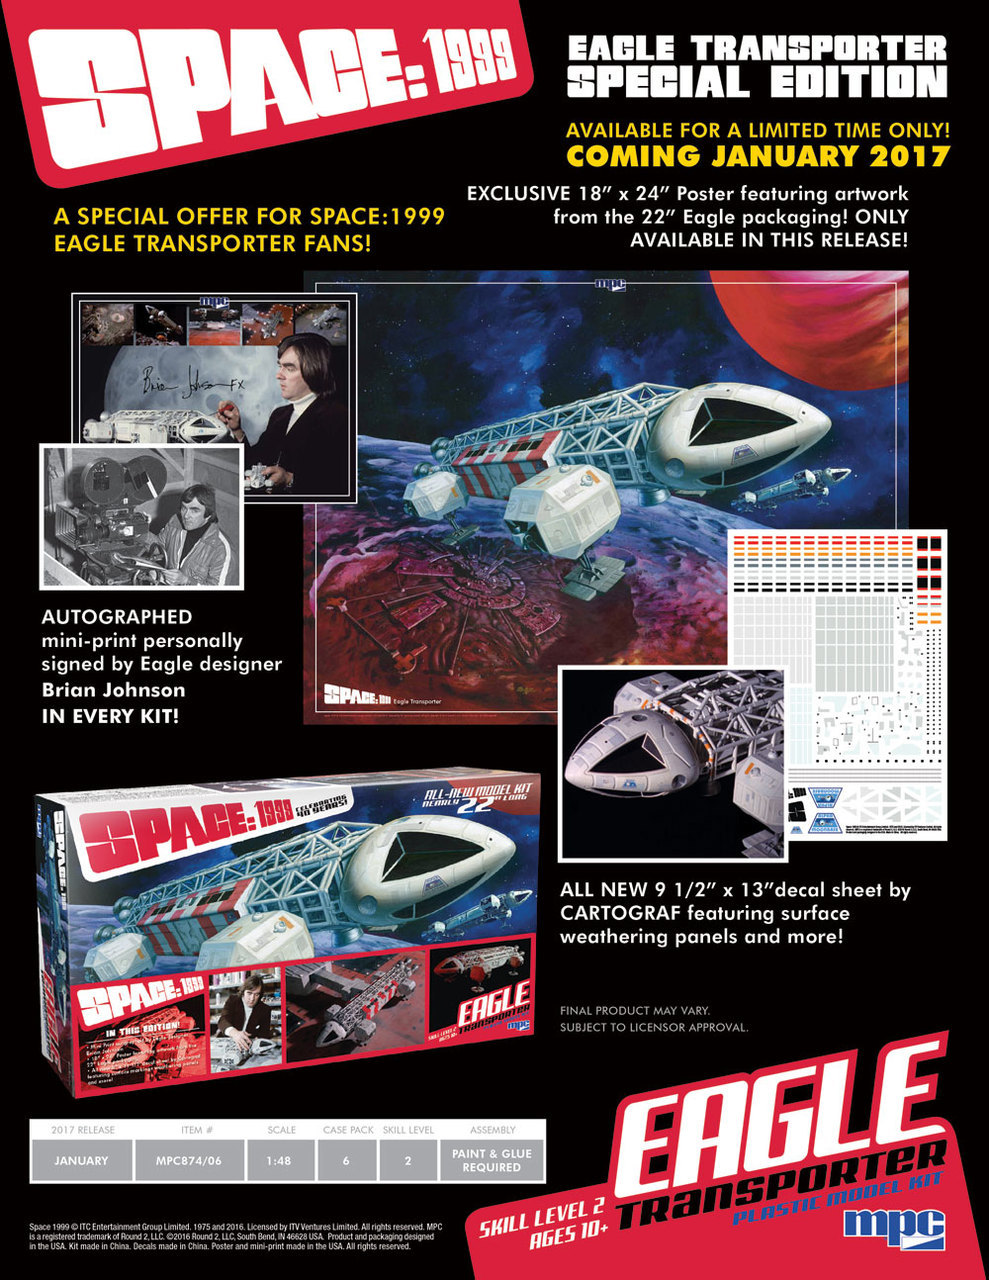 22-inch-eagle-transporter-model-kit-space-19999.jpg